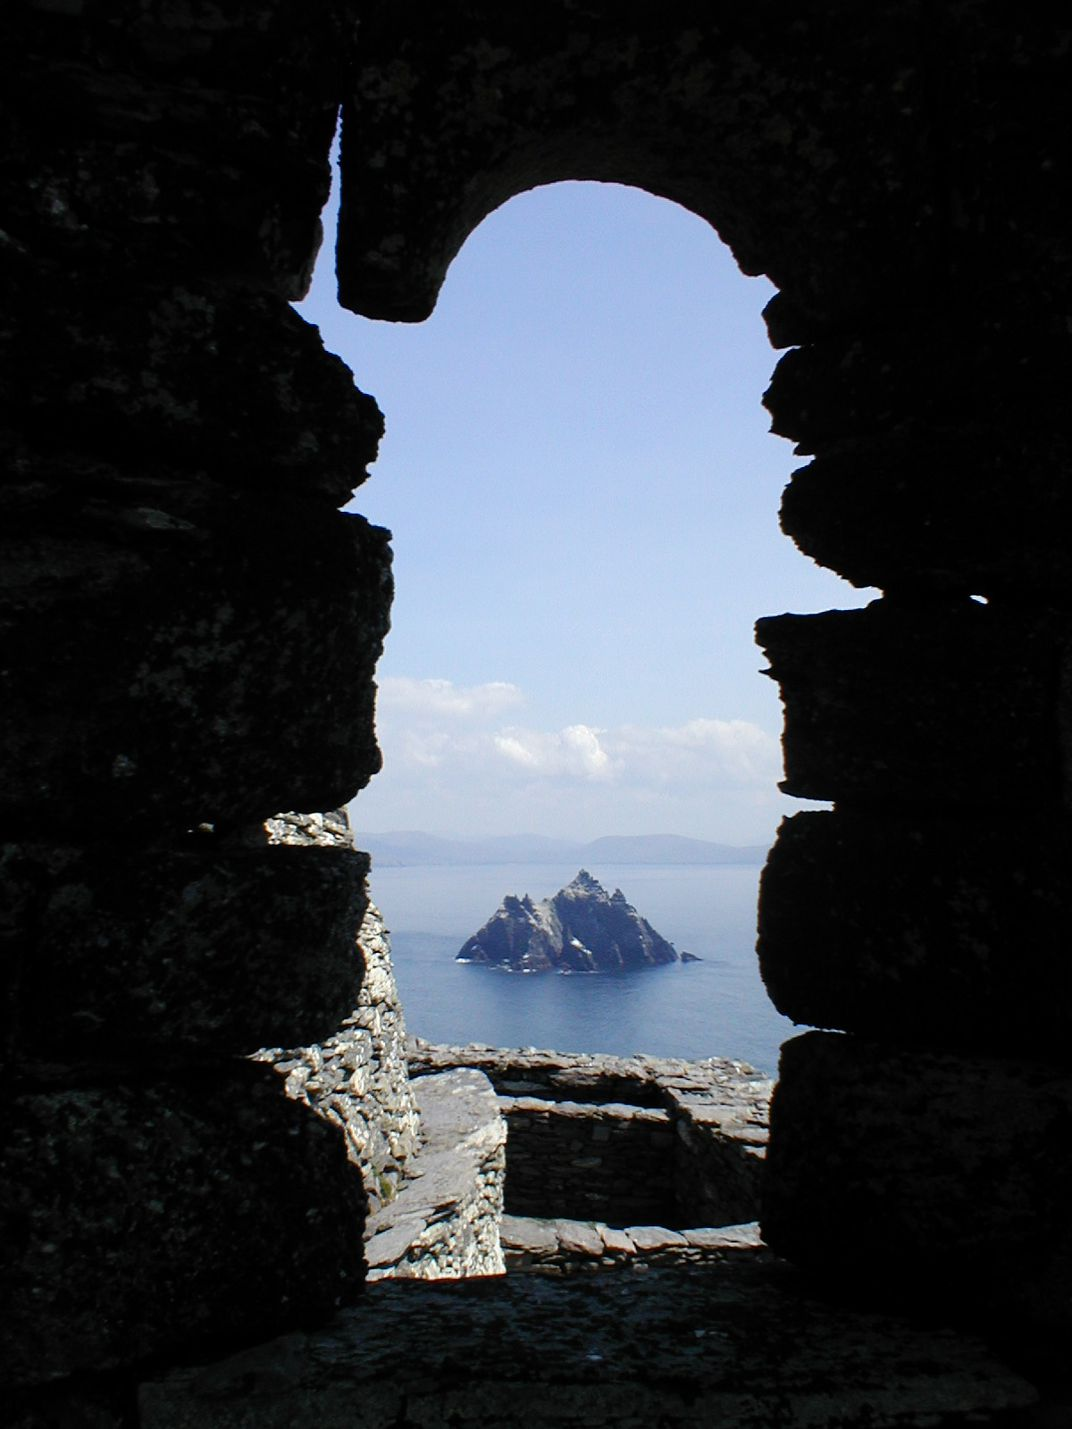 Little Skellig seen through a window of the hermitage of Skellig Michael